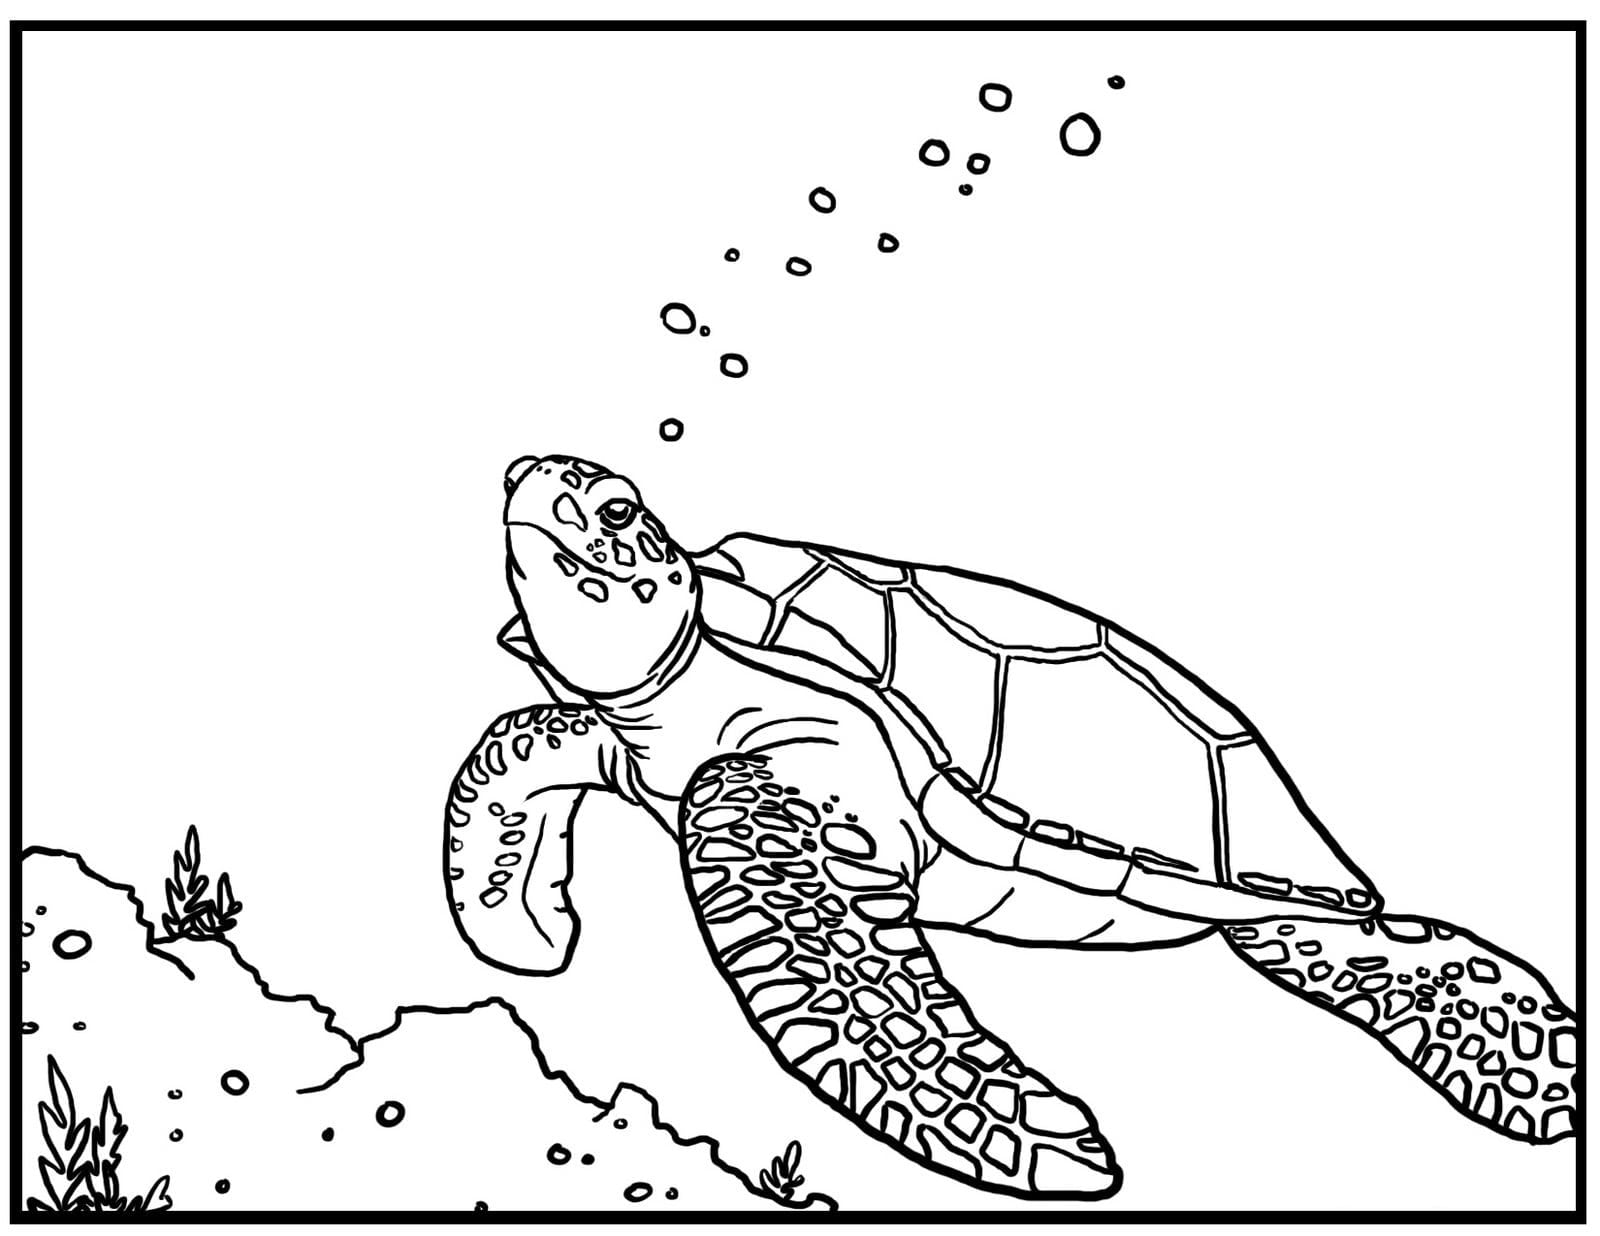 Liberal Sea Turtles Pictures To Color Printable Turtle Coloring